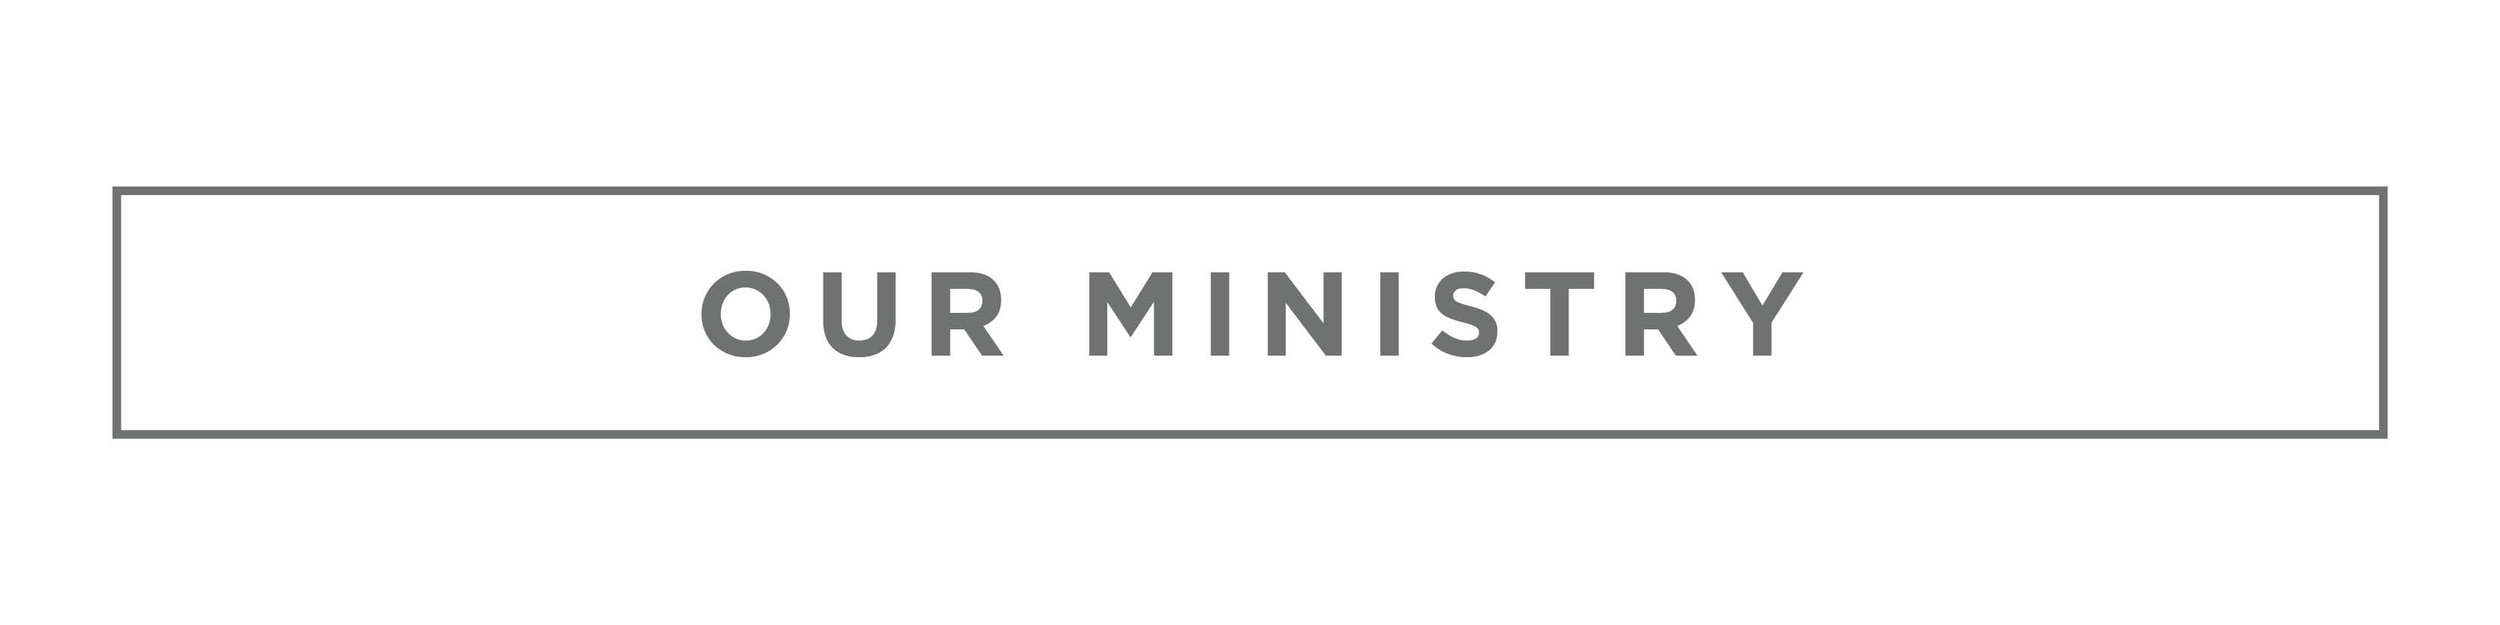 our ministry link.jpg